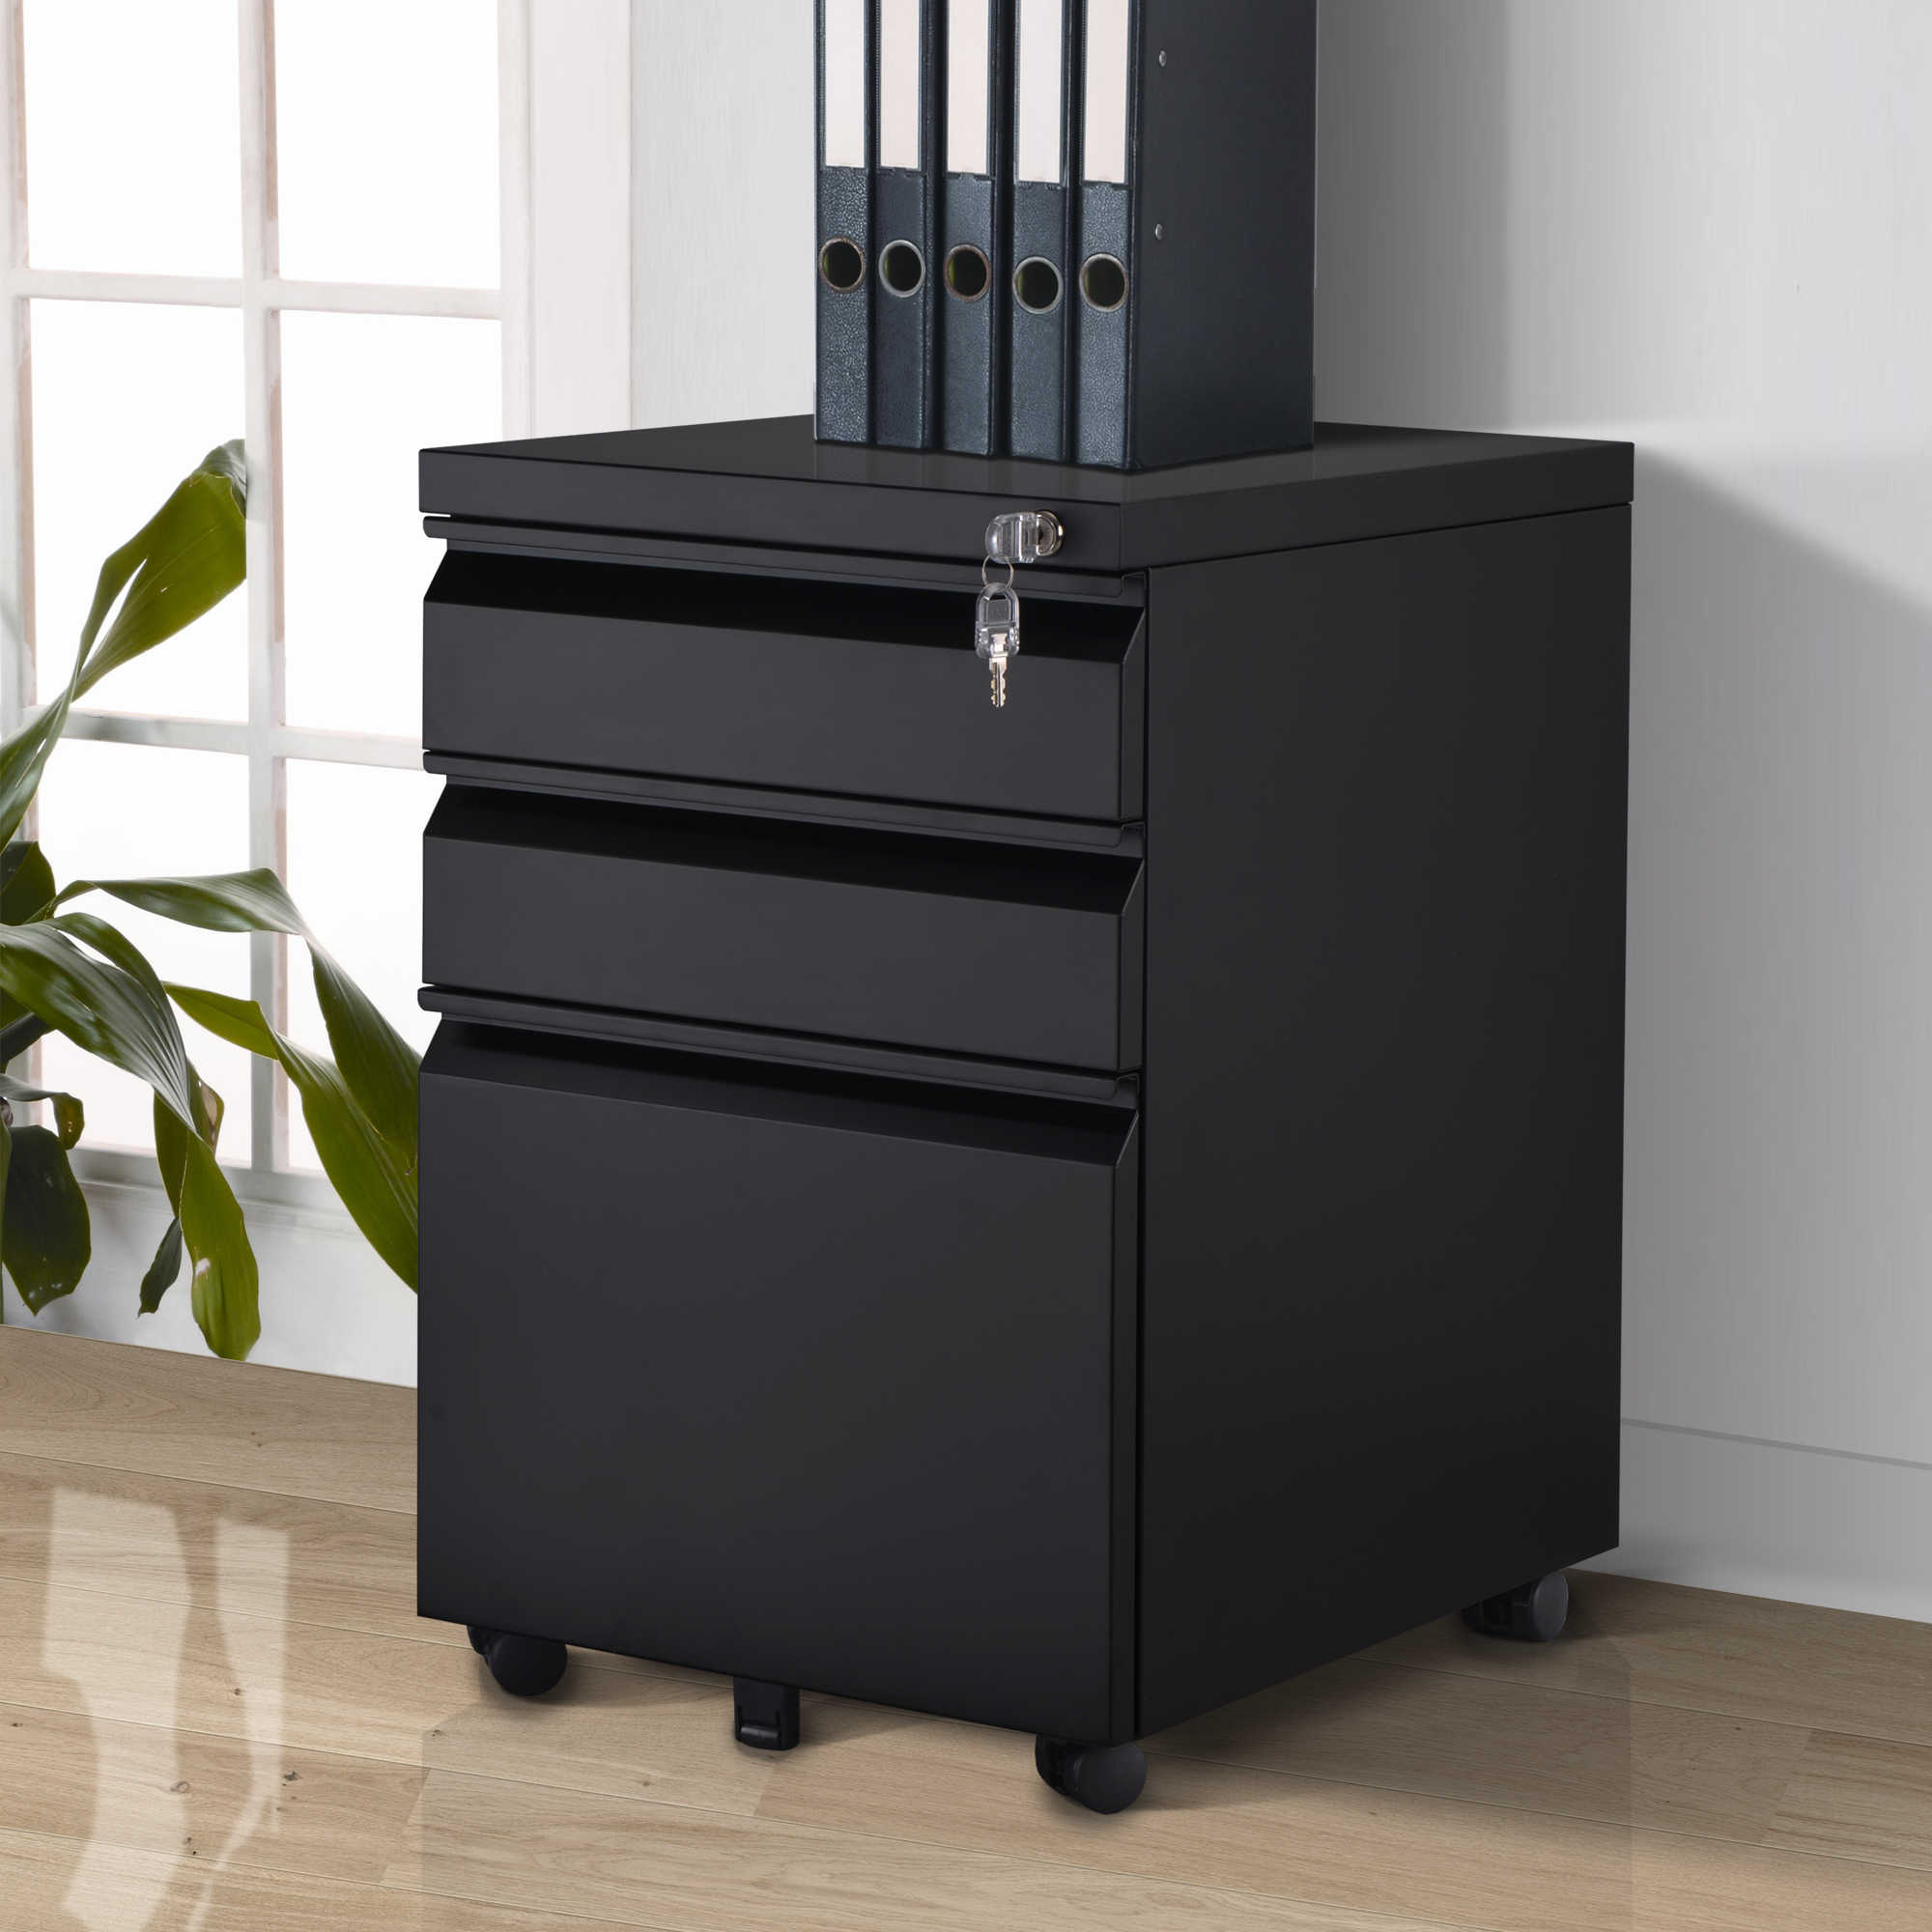 High Quality Steel Modern File Cabinets